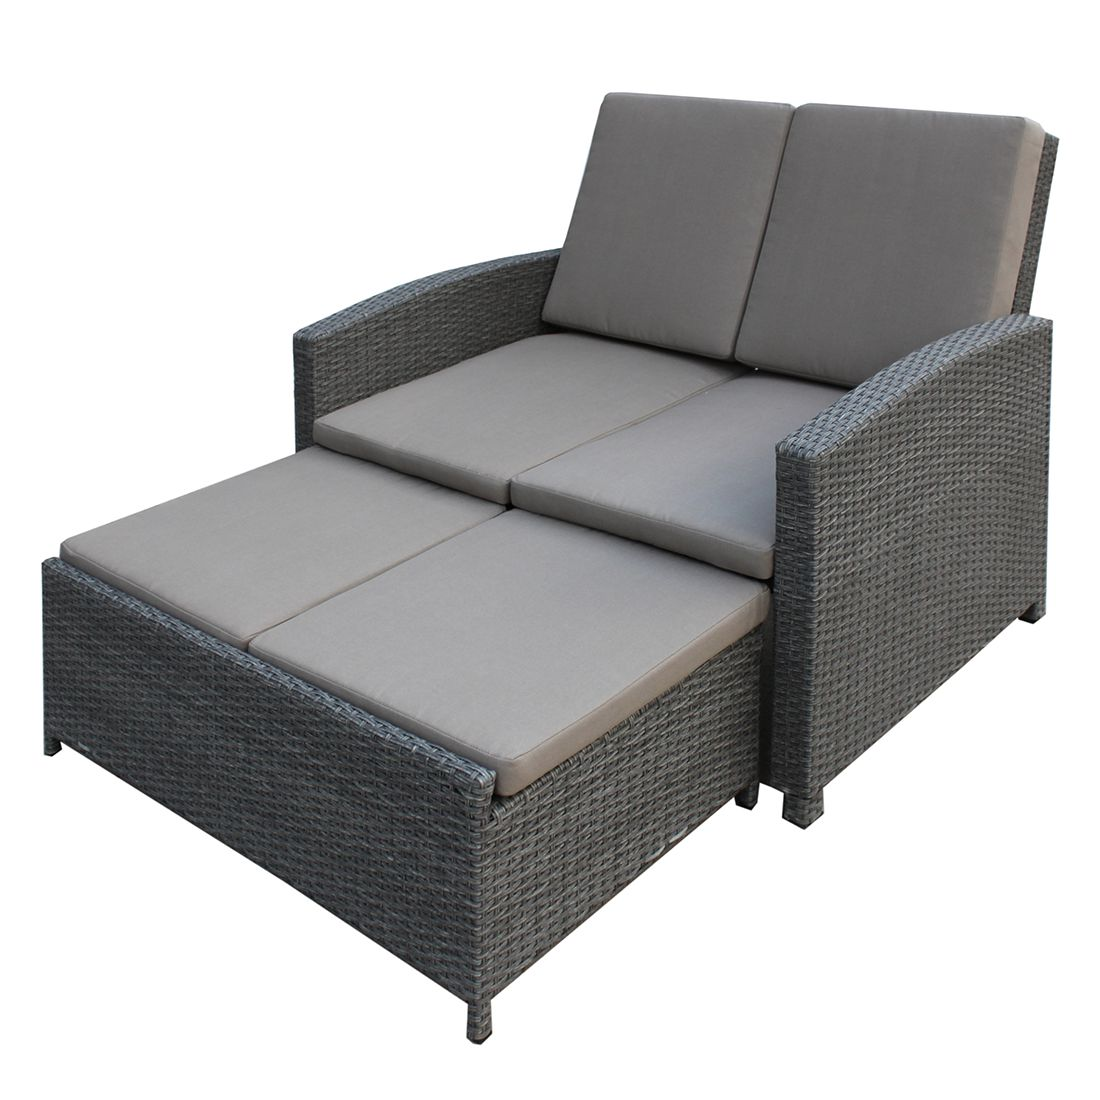 gartensofa villanova inkl hocker polyrattan grau textil grau. Black Bedroom Furniture Sets. Home Design Ideas